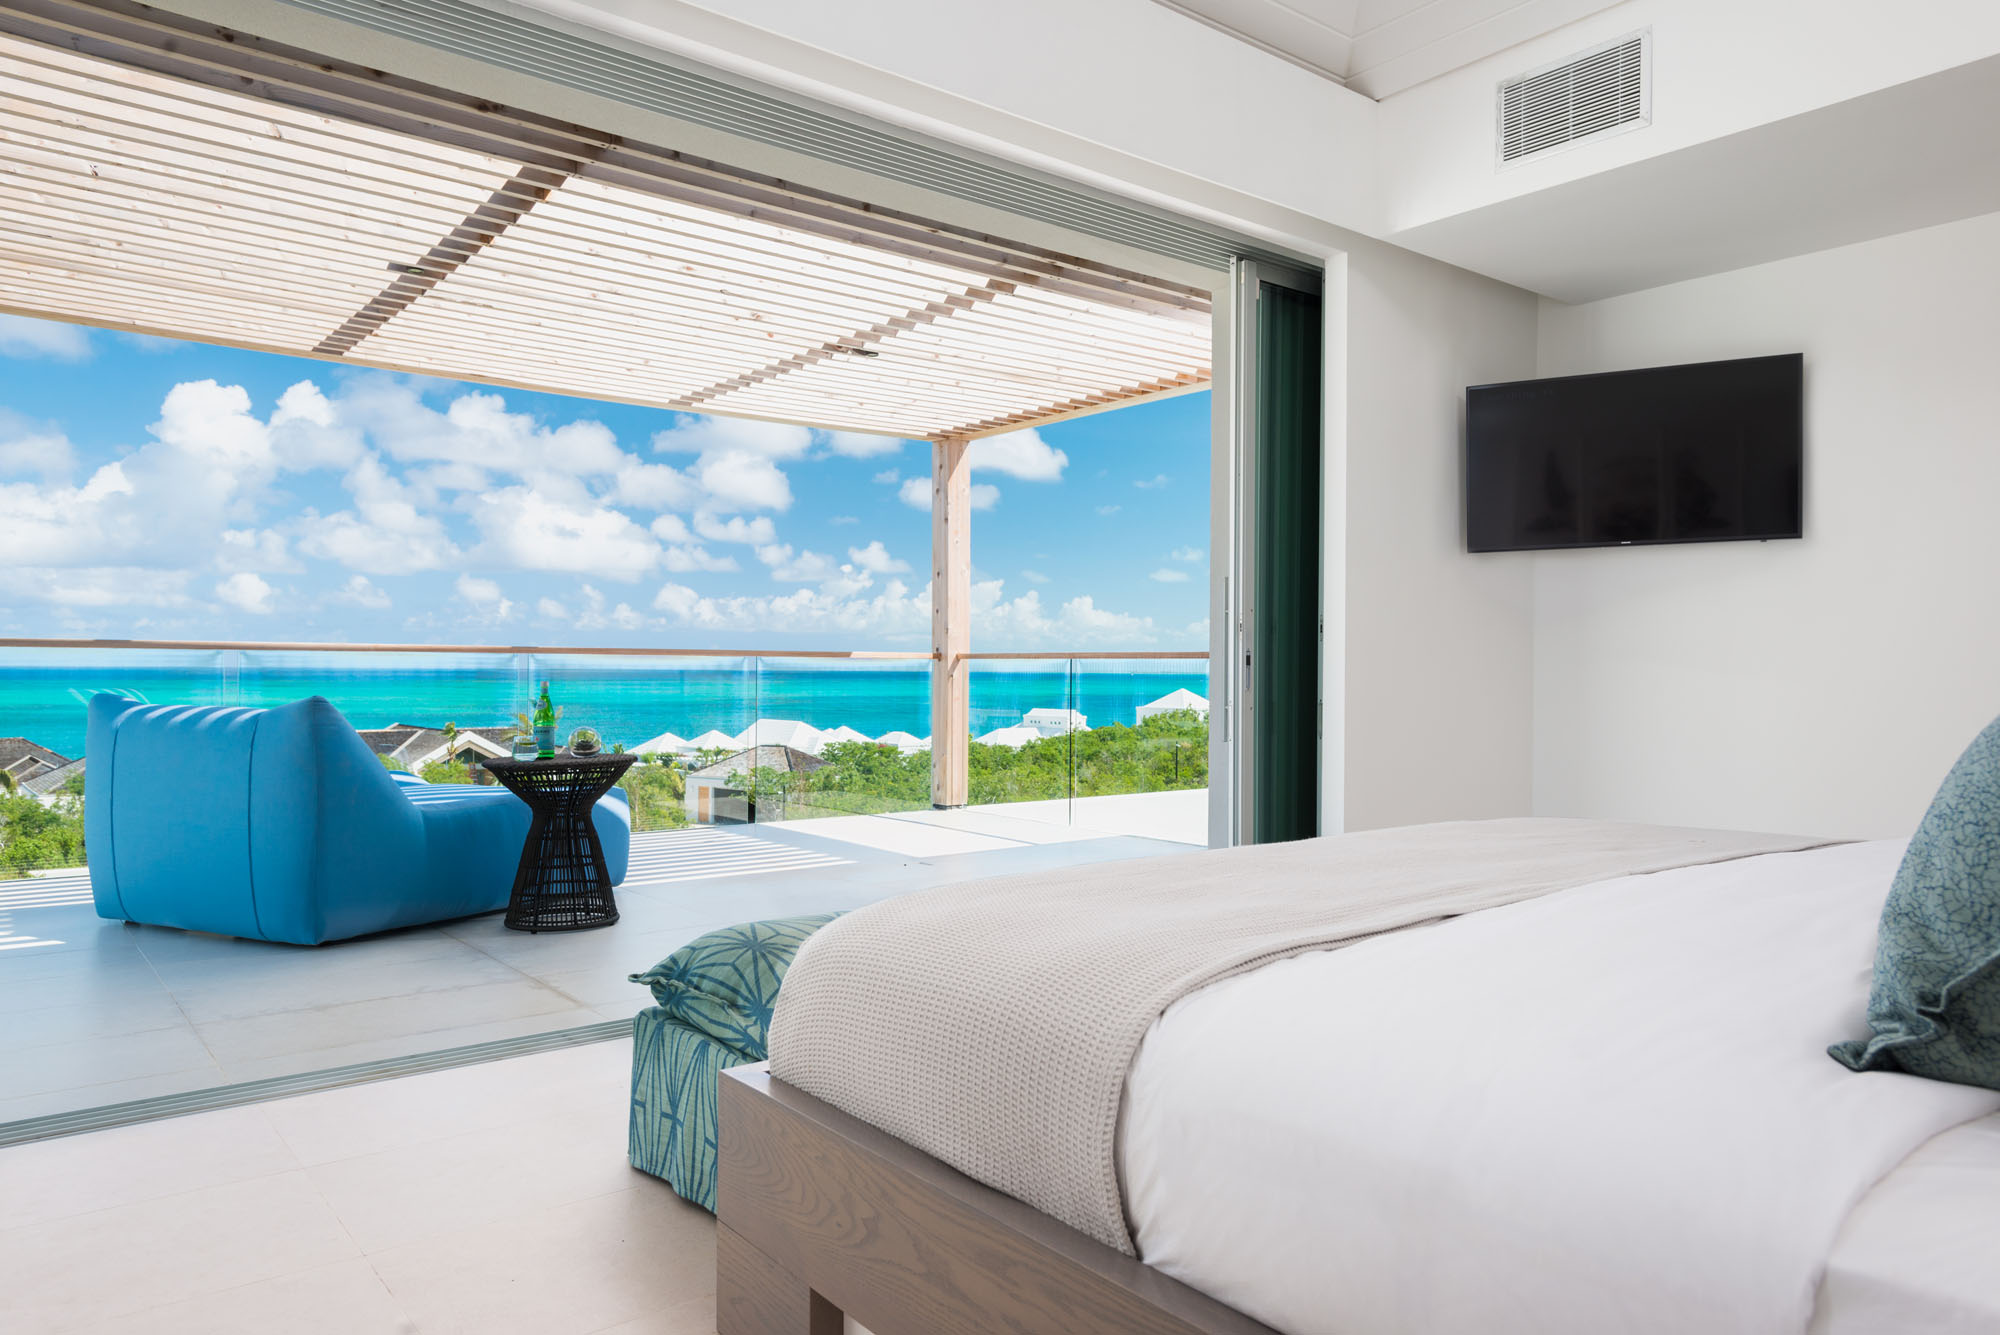 All of the bedrooms of these Turks and Caicos luxury ocean view villa rentals face the ocean.